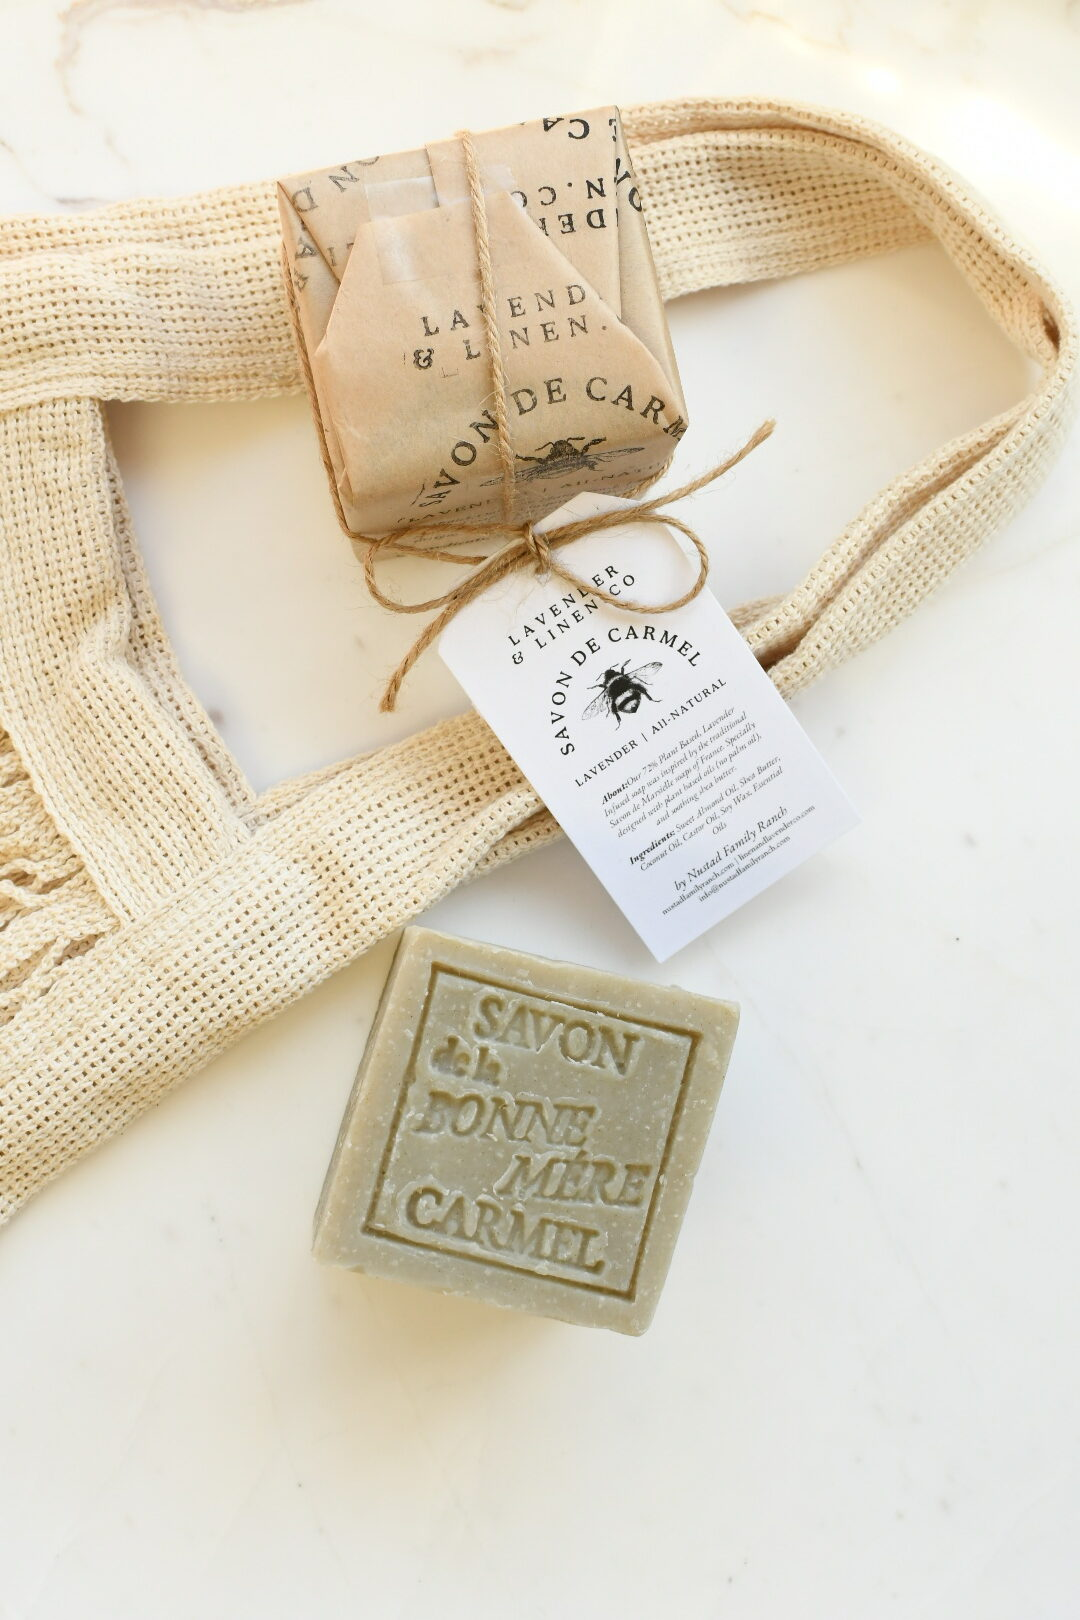 California Products by popular Monterey life and style blog, Haute Beauty Guide: image of Salon de Carmel soap next to a mesh shopping bag.